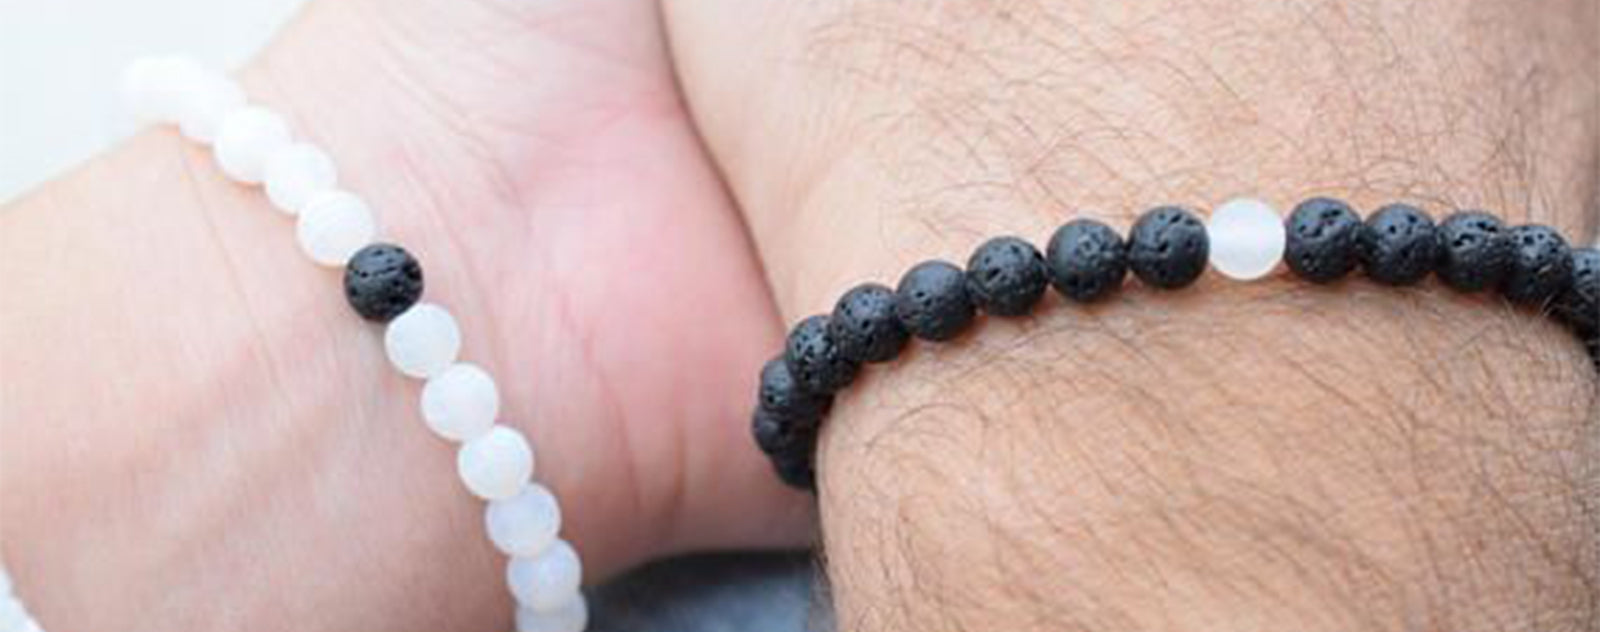 Yin Yang Bracelet Friendship